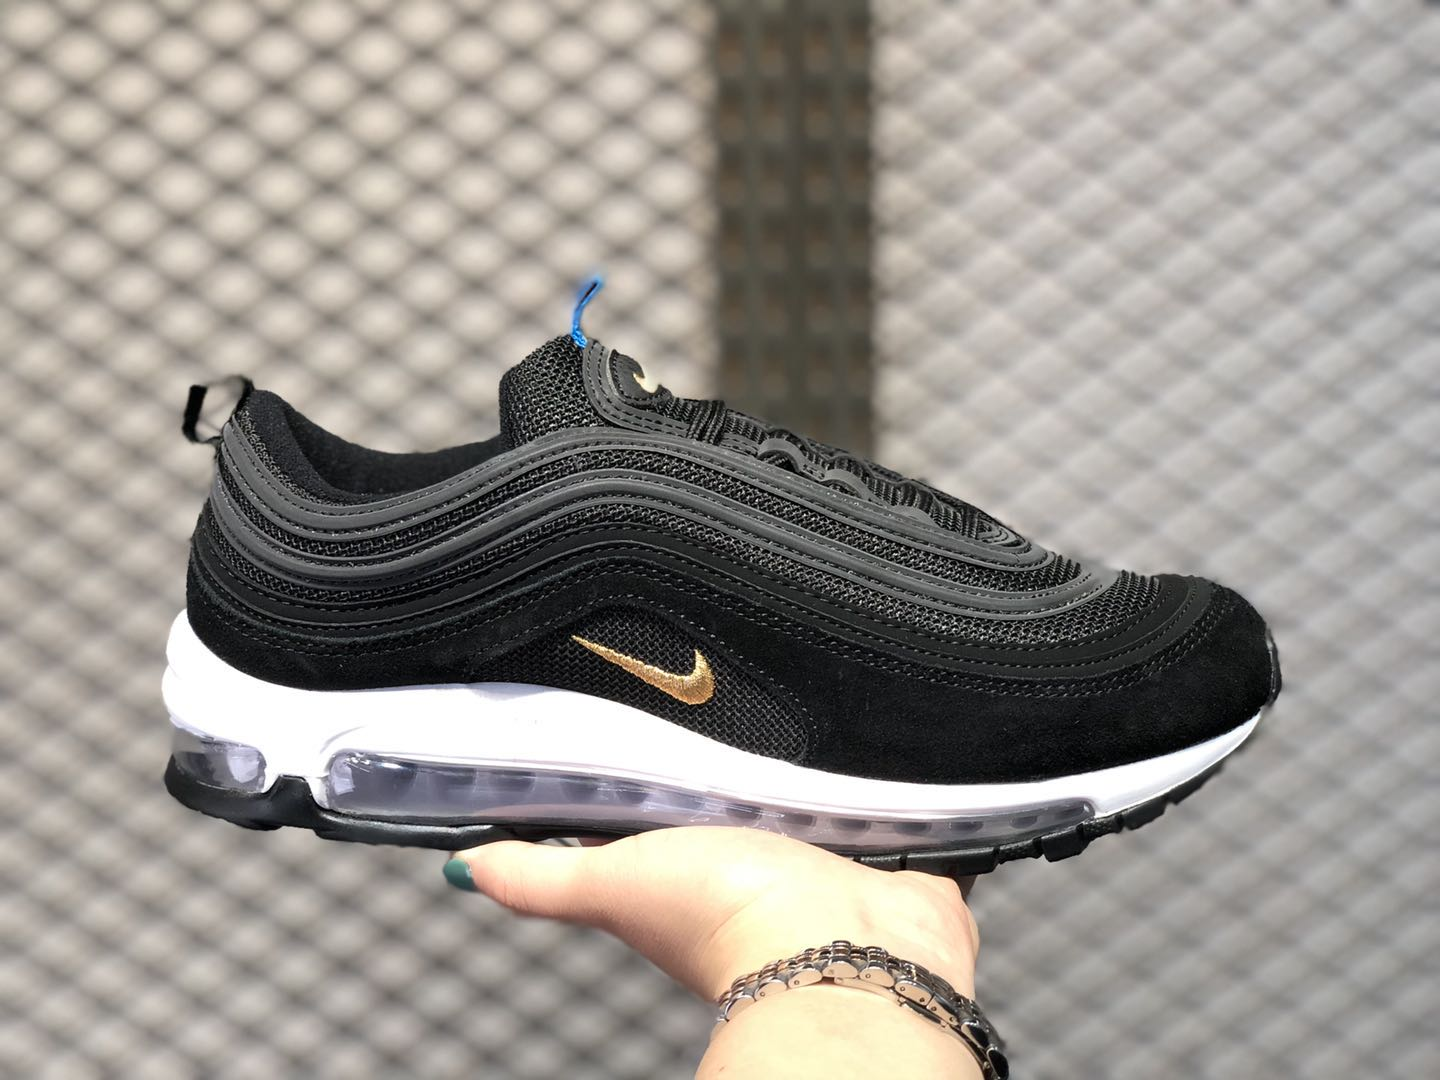 pared oasis puerta  New Sale Nike Air Max 97 Olympic Rings Pack-Black CI3708-001 | Sneakers Big  Sale